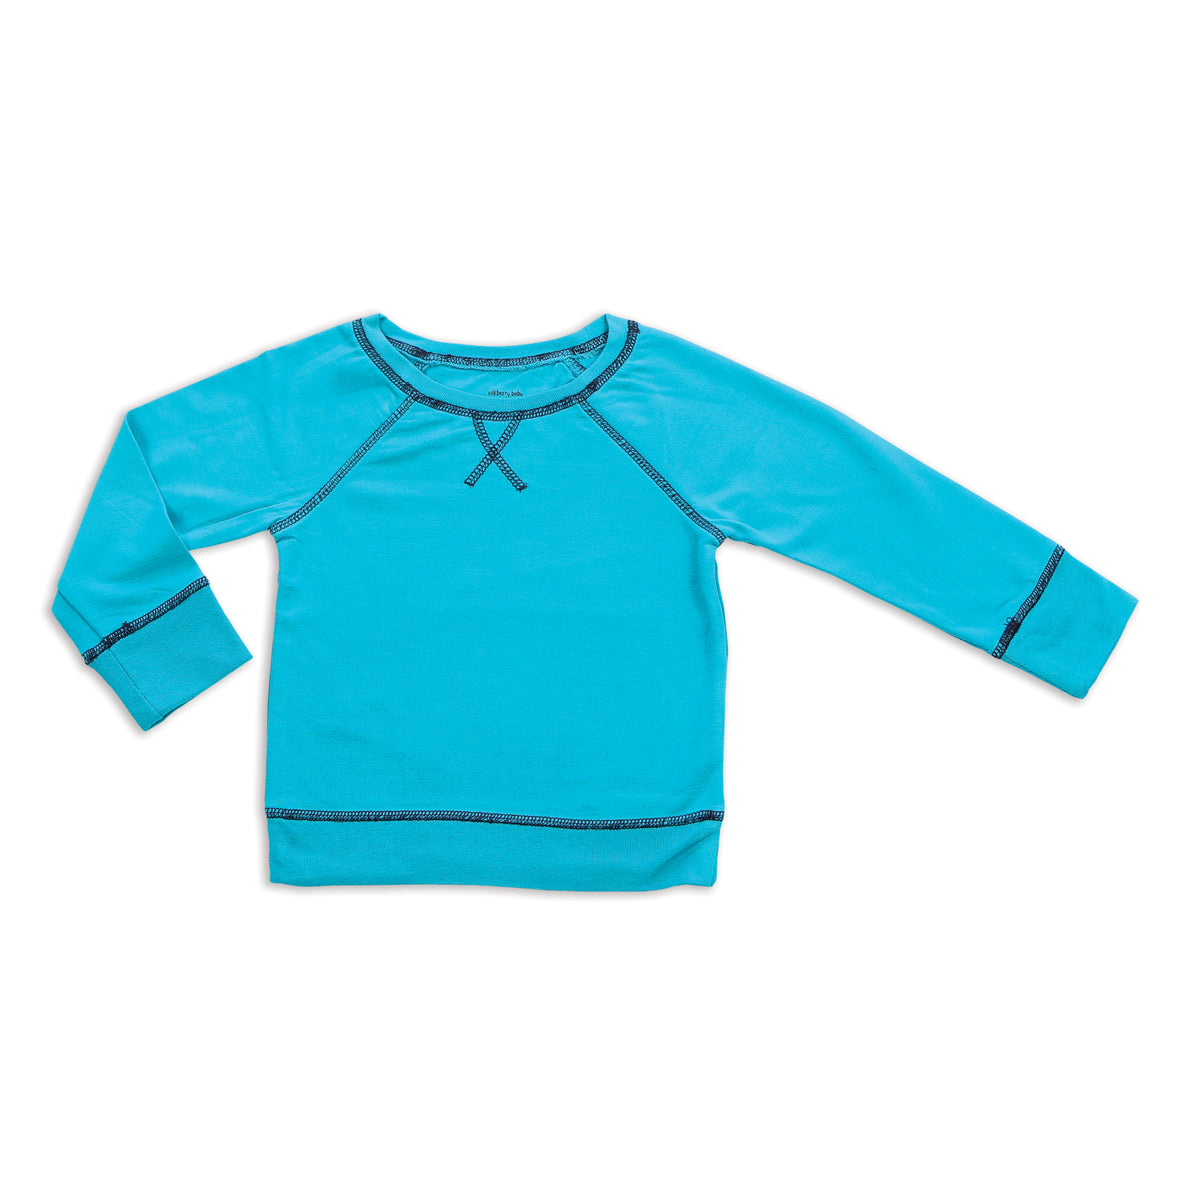 Bamboo Fleece Sweatshirt (Electric Teal)